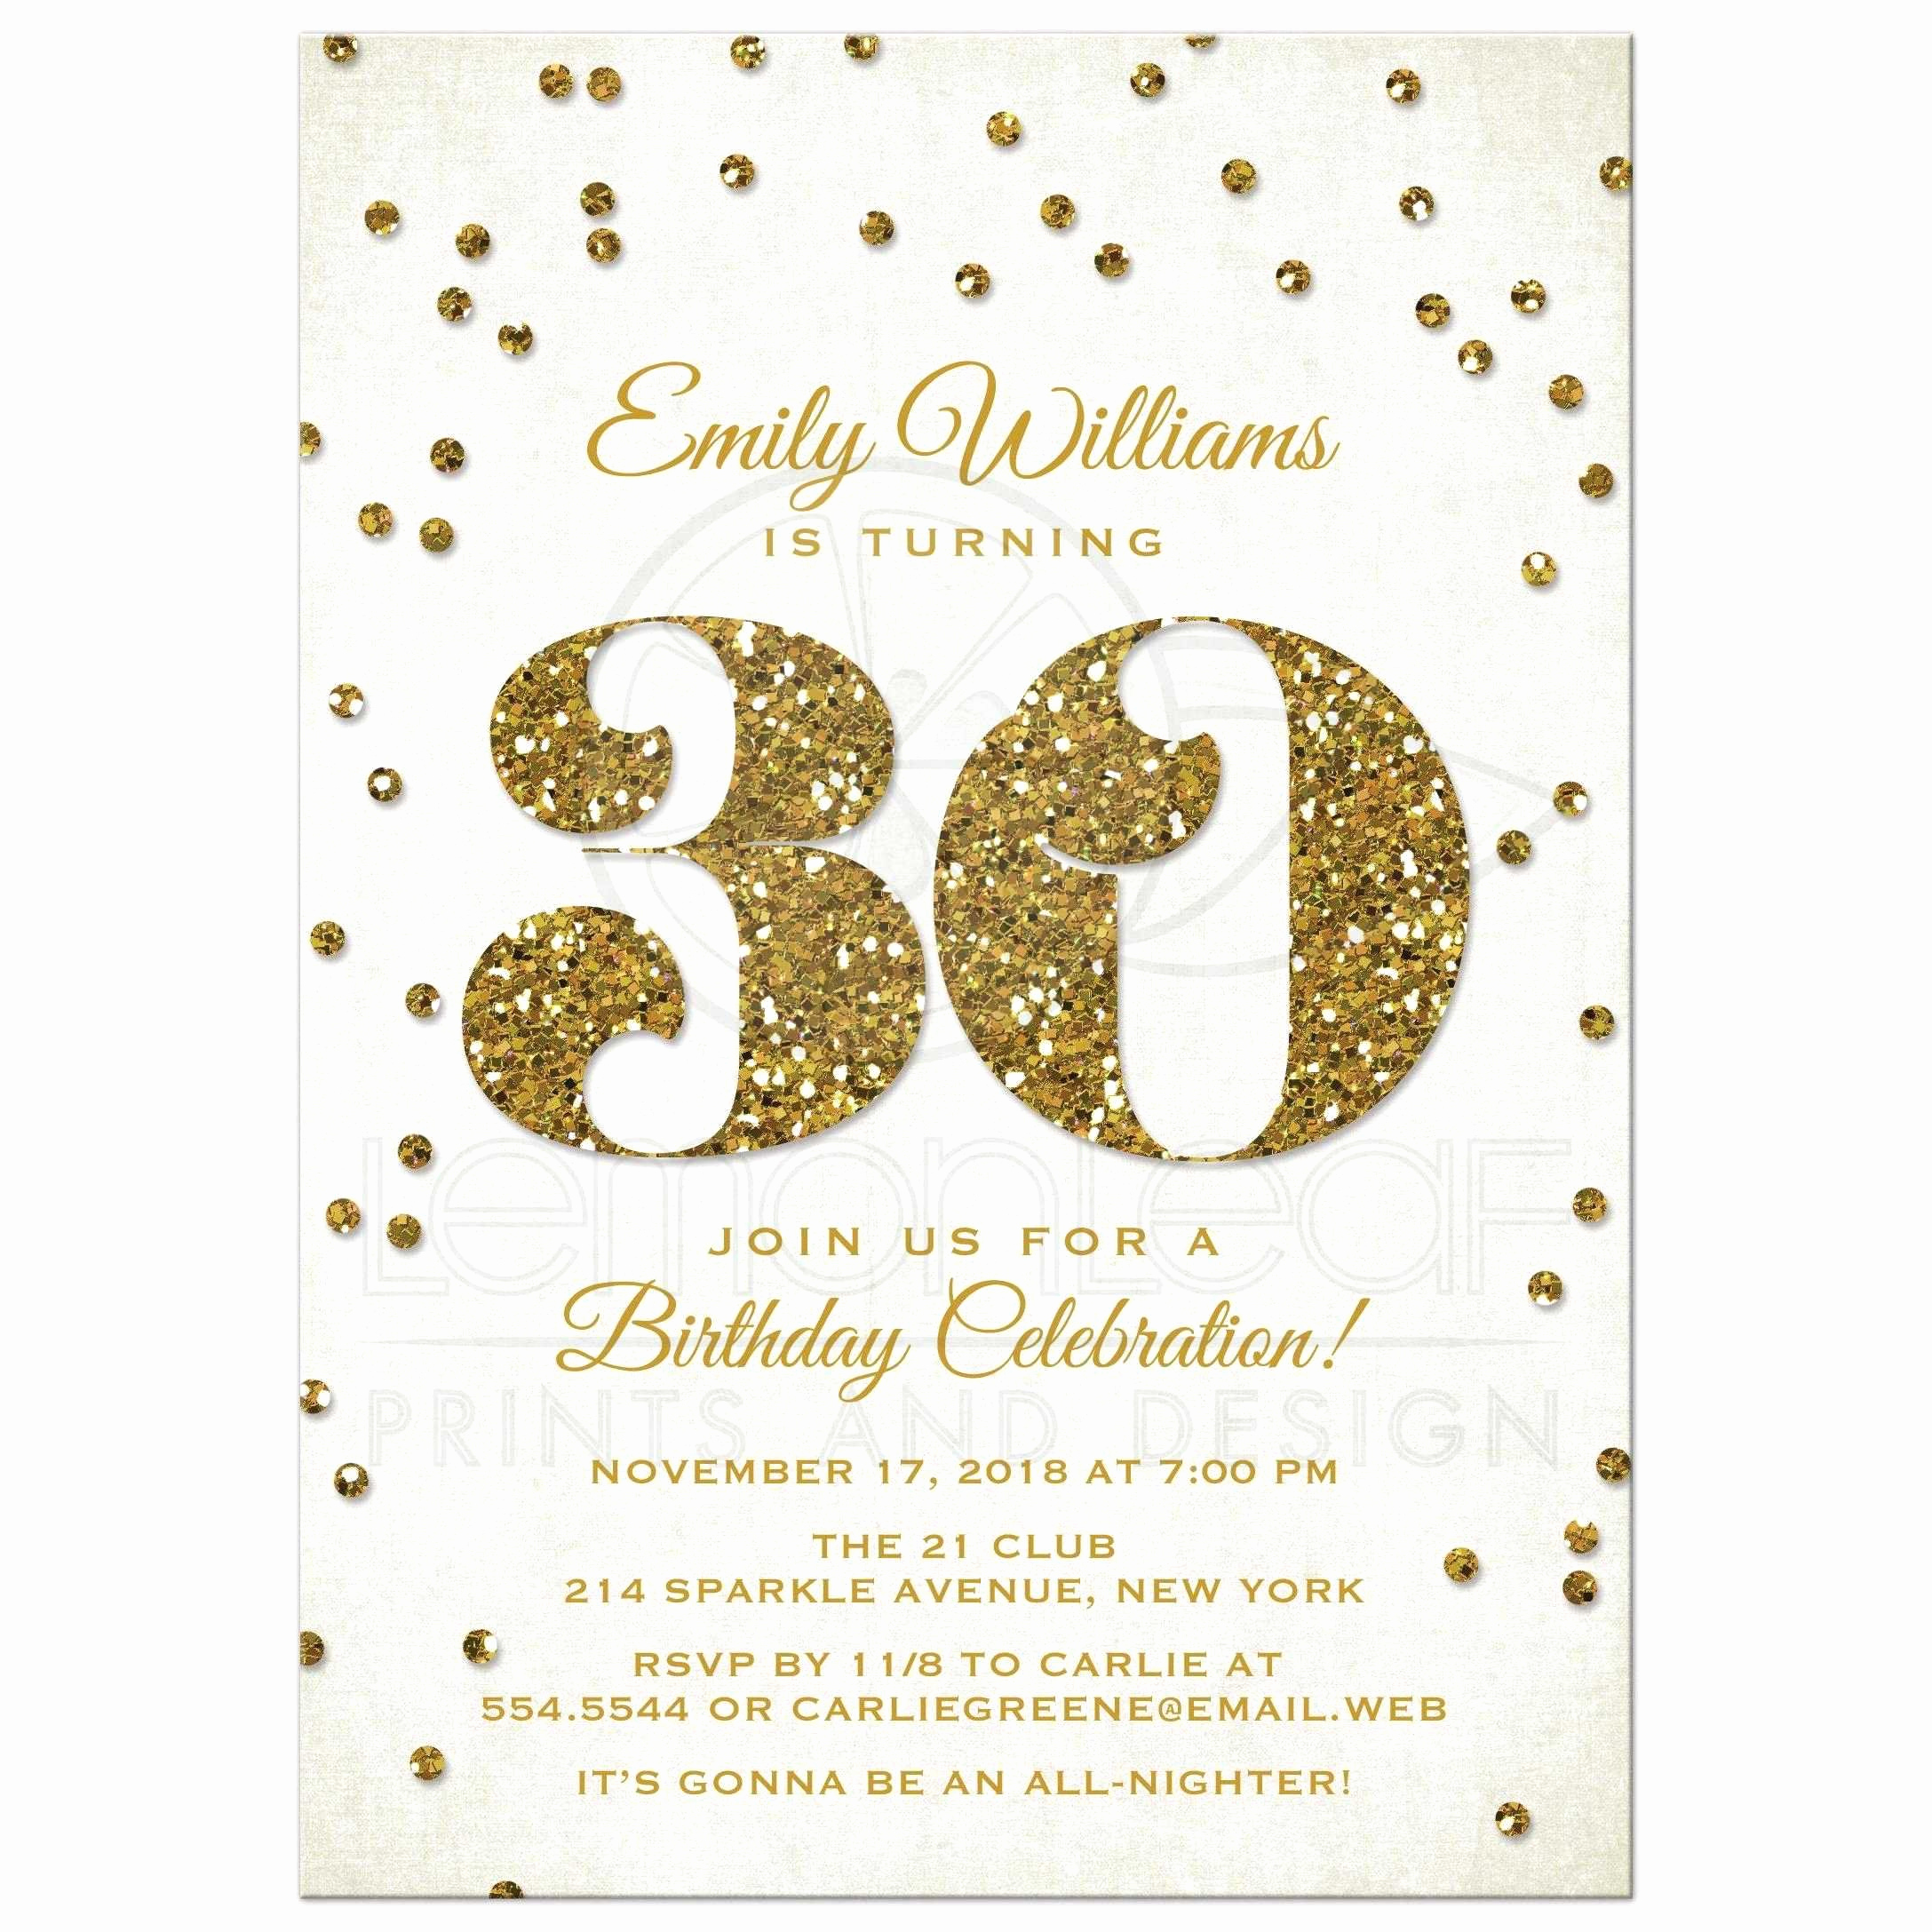 Free Birthday Party Invitation Templates Unique 30th Birthday Invitations Templates Free Printable